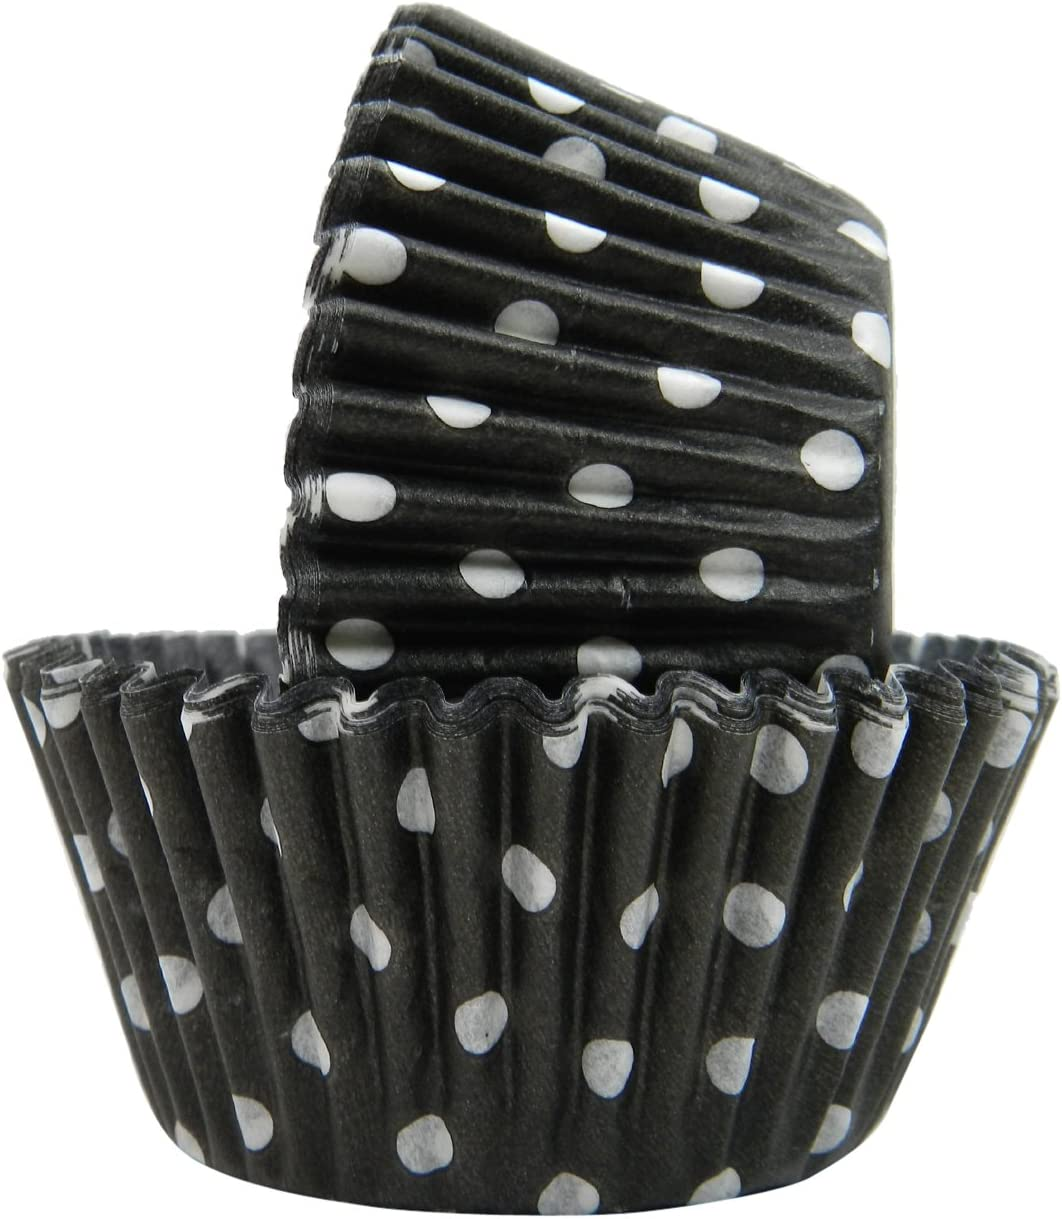 Regency Wraps Greaseproof Baking Cups Black 40 Coun Polka Free shipping anywhere in the nation Dots Year-end gift